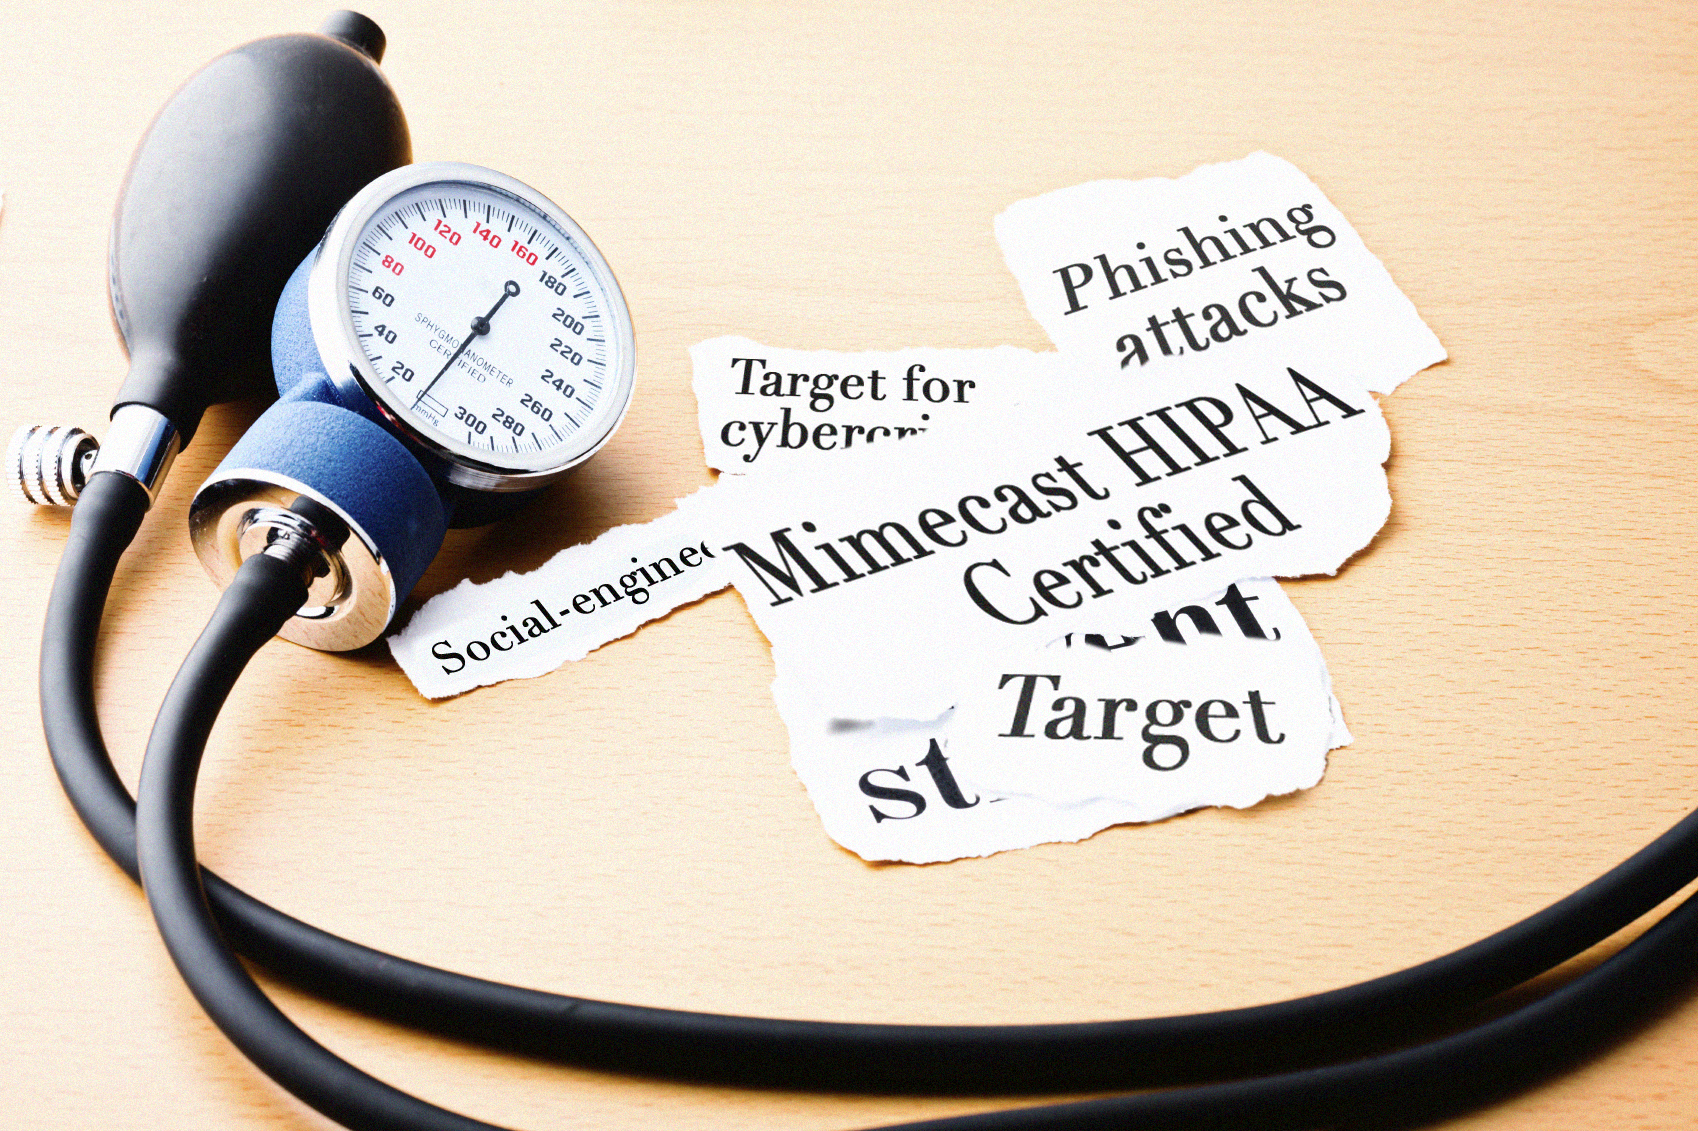 Mimecast has recently passed the Health Insurance Portability and Accountability Act (HIPAA) Security Compliance Assessment. This third-party assessment verifies the safeguards in place to protect health information within Mimecast's software and facilities.